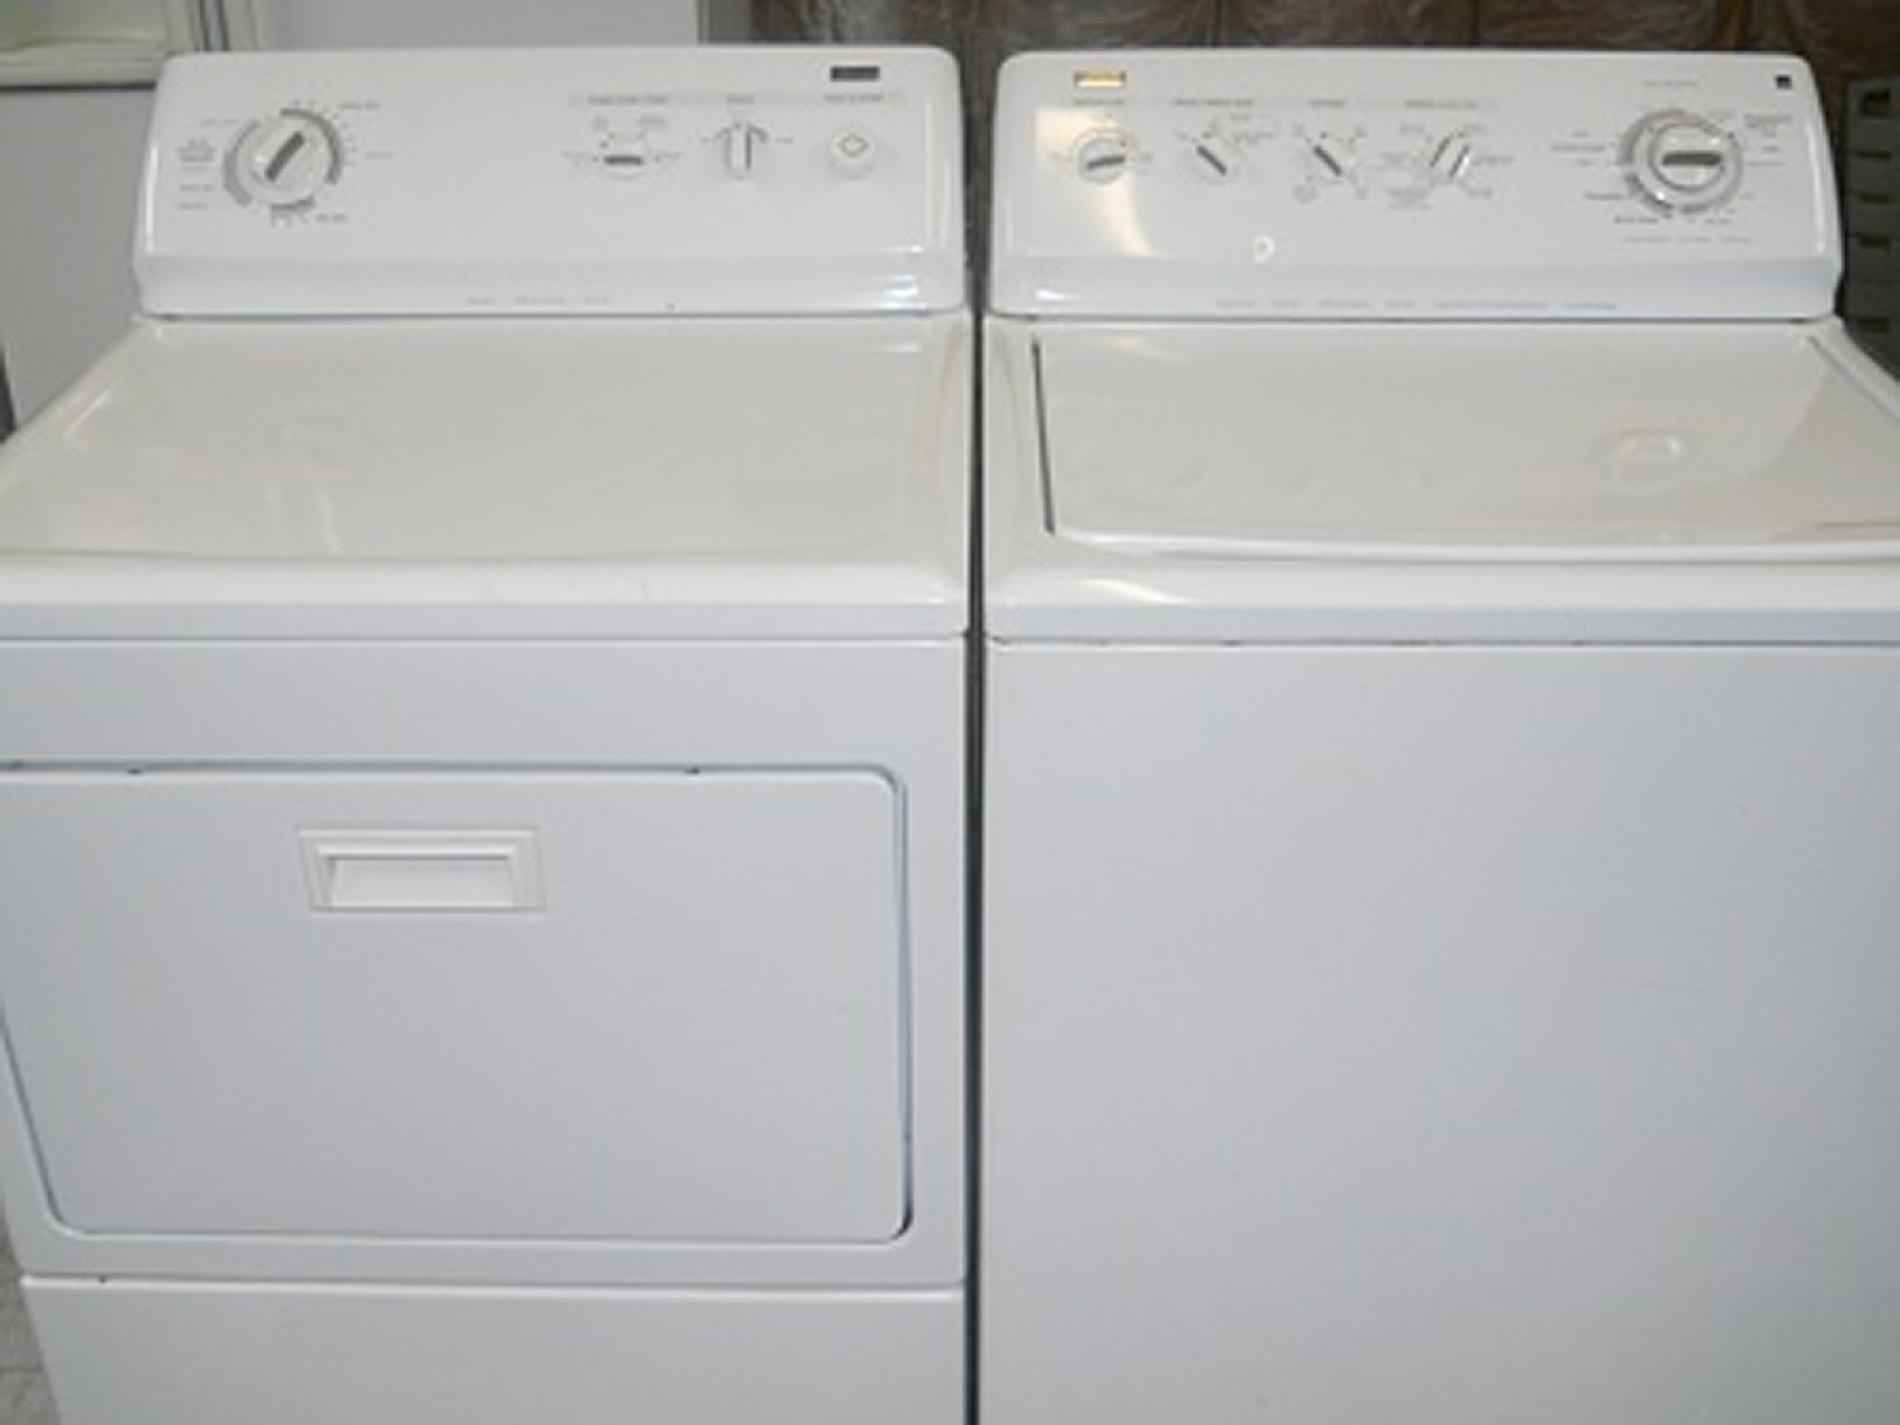 Kenmore 3.8 top load HE Washer and 7.5 ct. fl. Electric Dryer